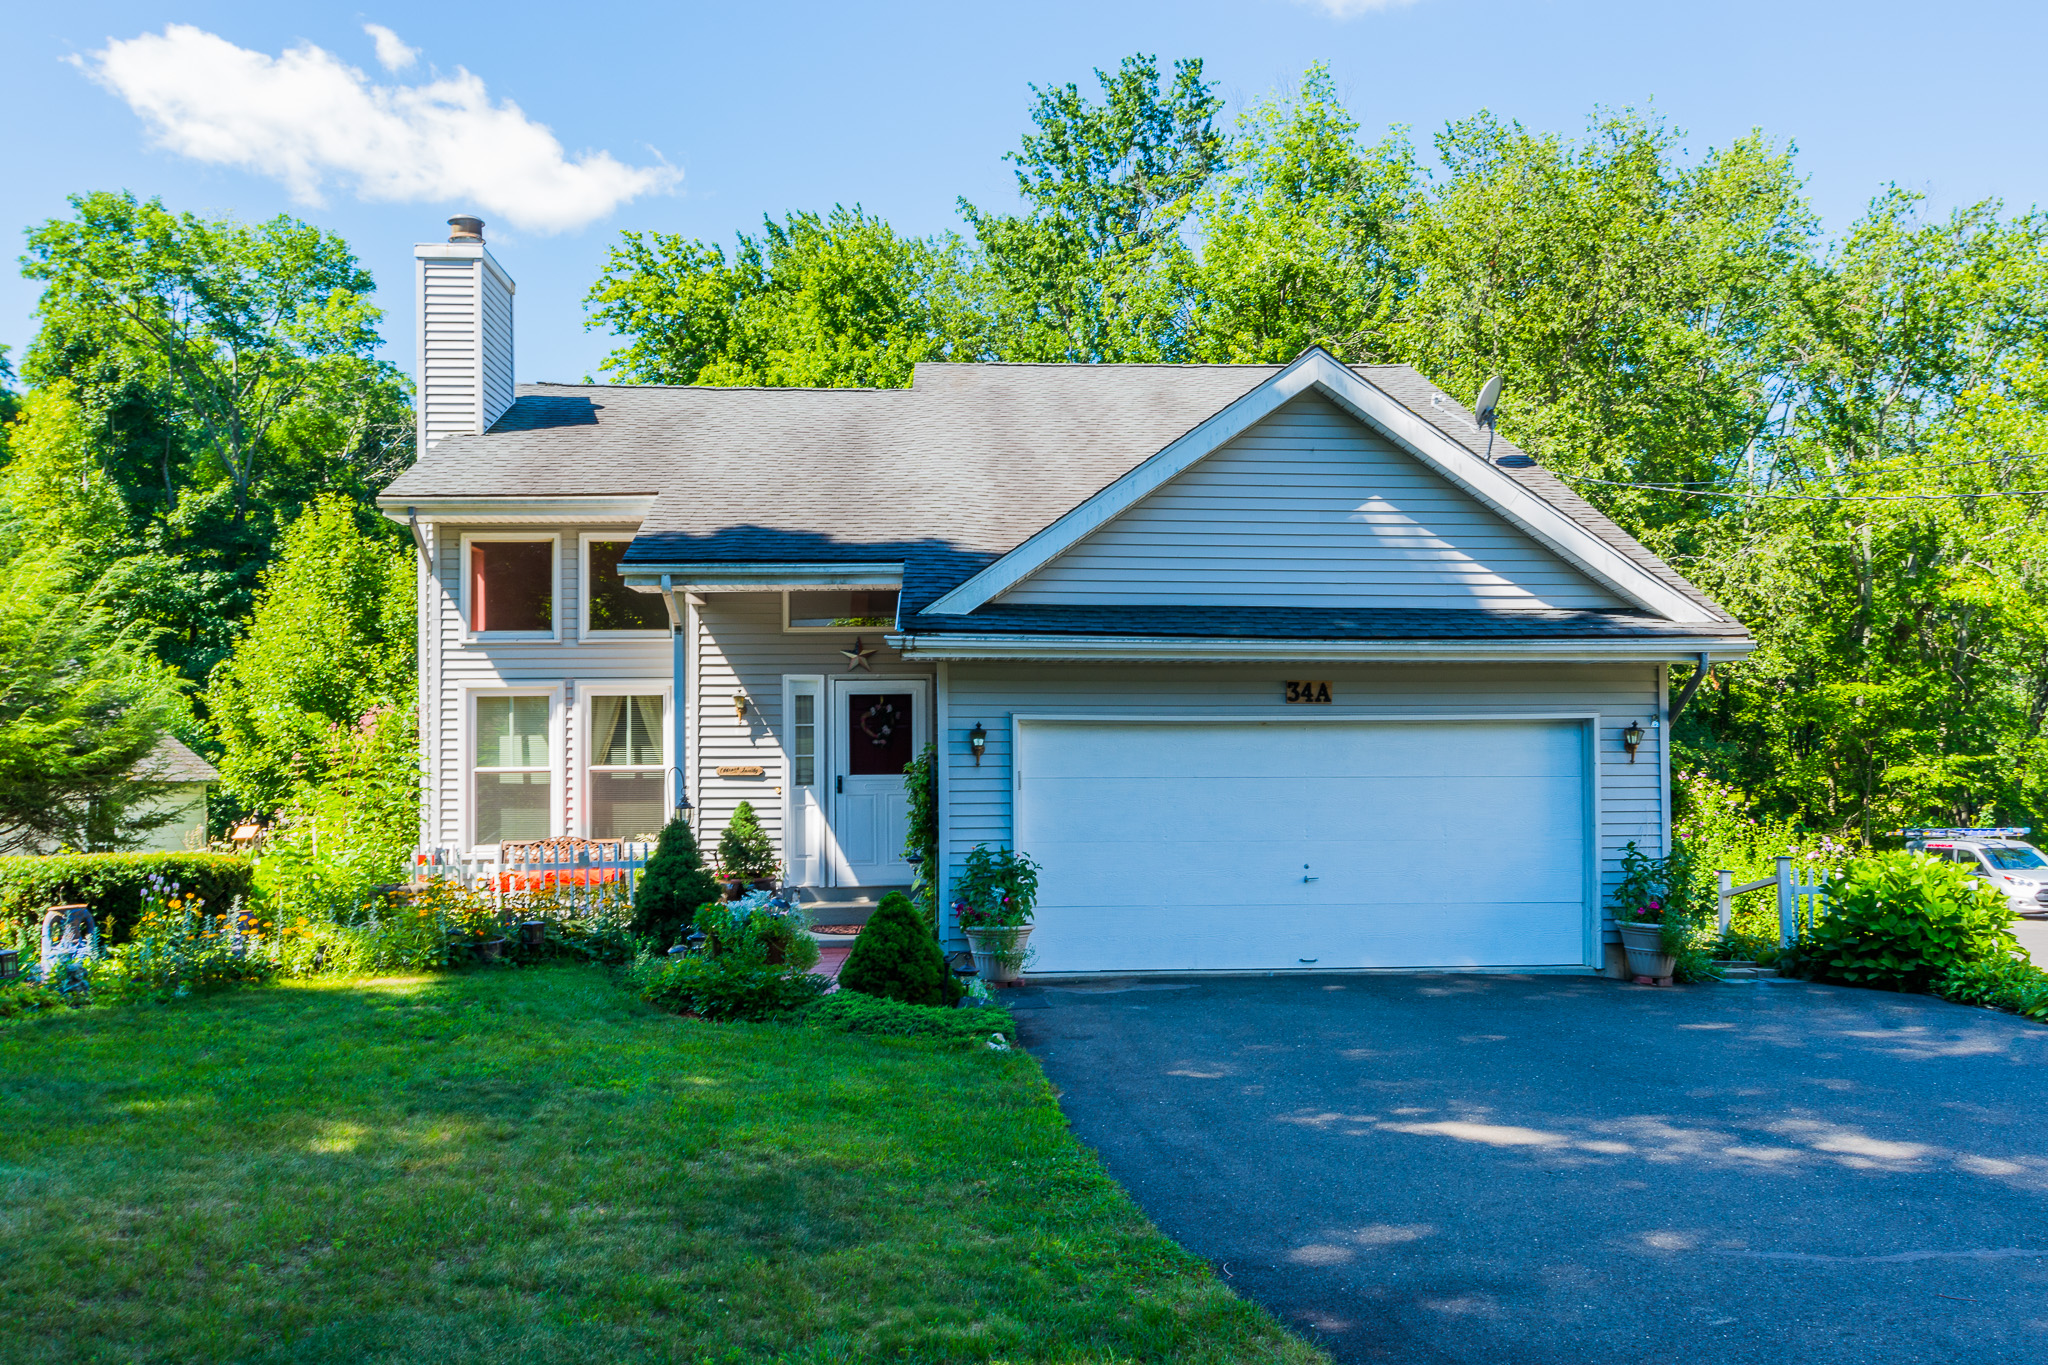 Single Family Home for Sale at Bright Open Floor Plan 34 East Pembroke Road Danbury, Connecticut, 06811 United States